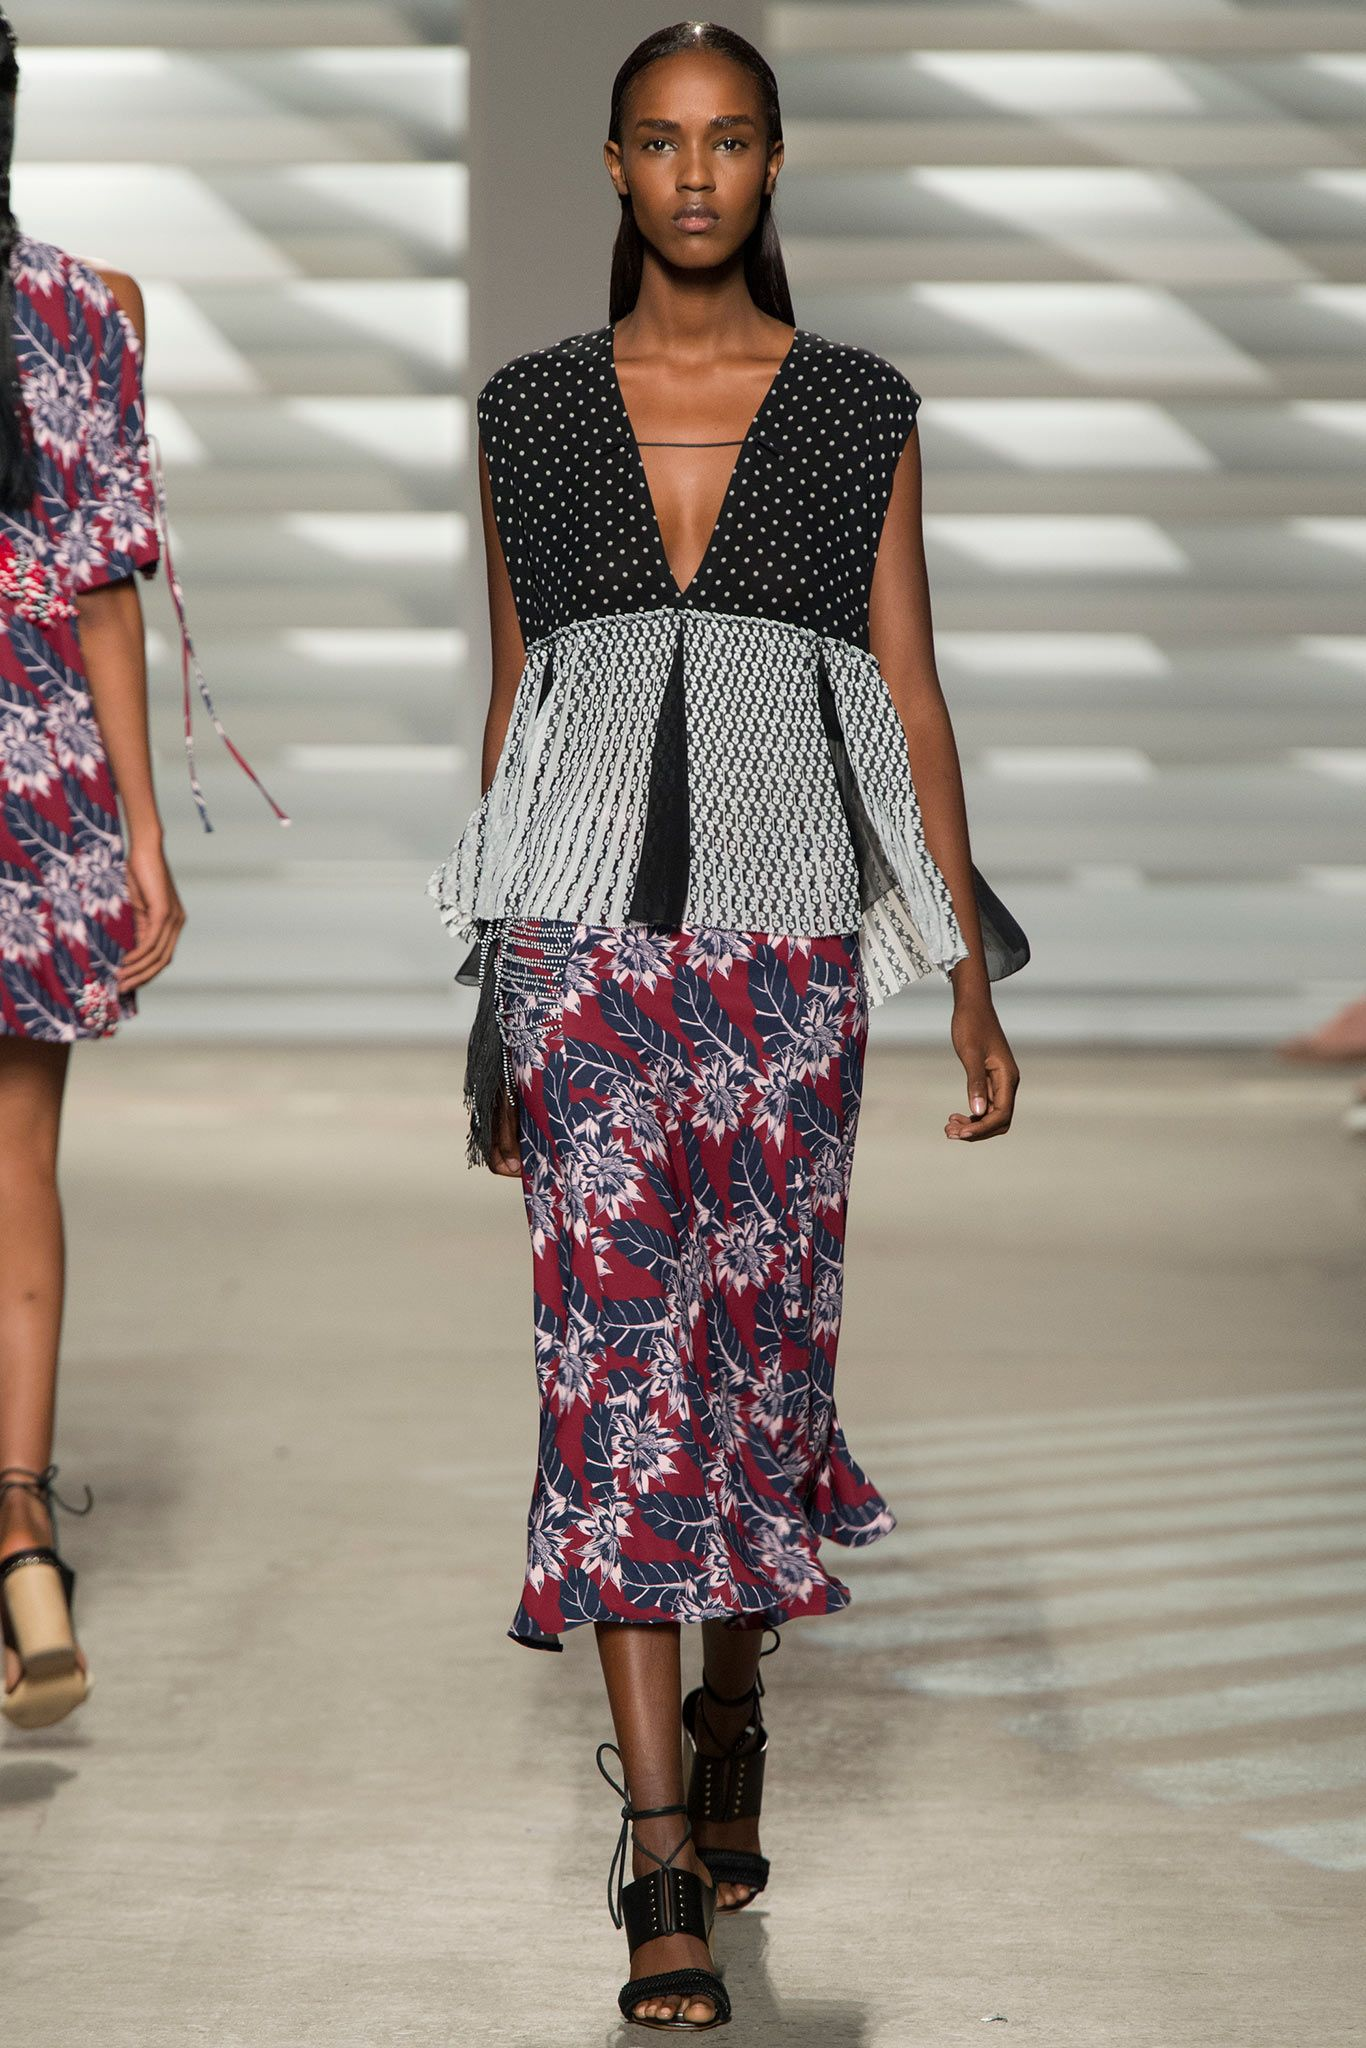 Discussion on this topic: Thakoon SpringSummer 2015 Collection – New York , thakoon-springsummer-2015-collection-new-york/